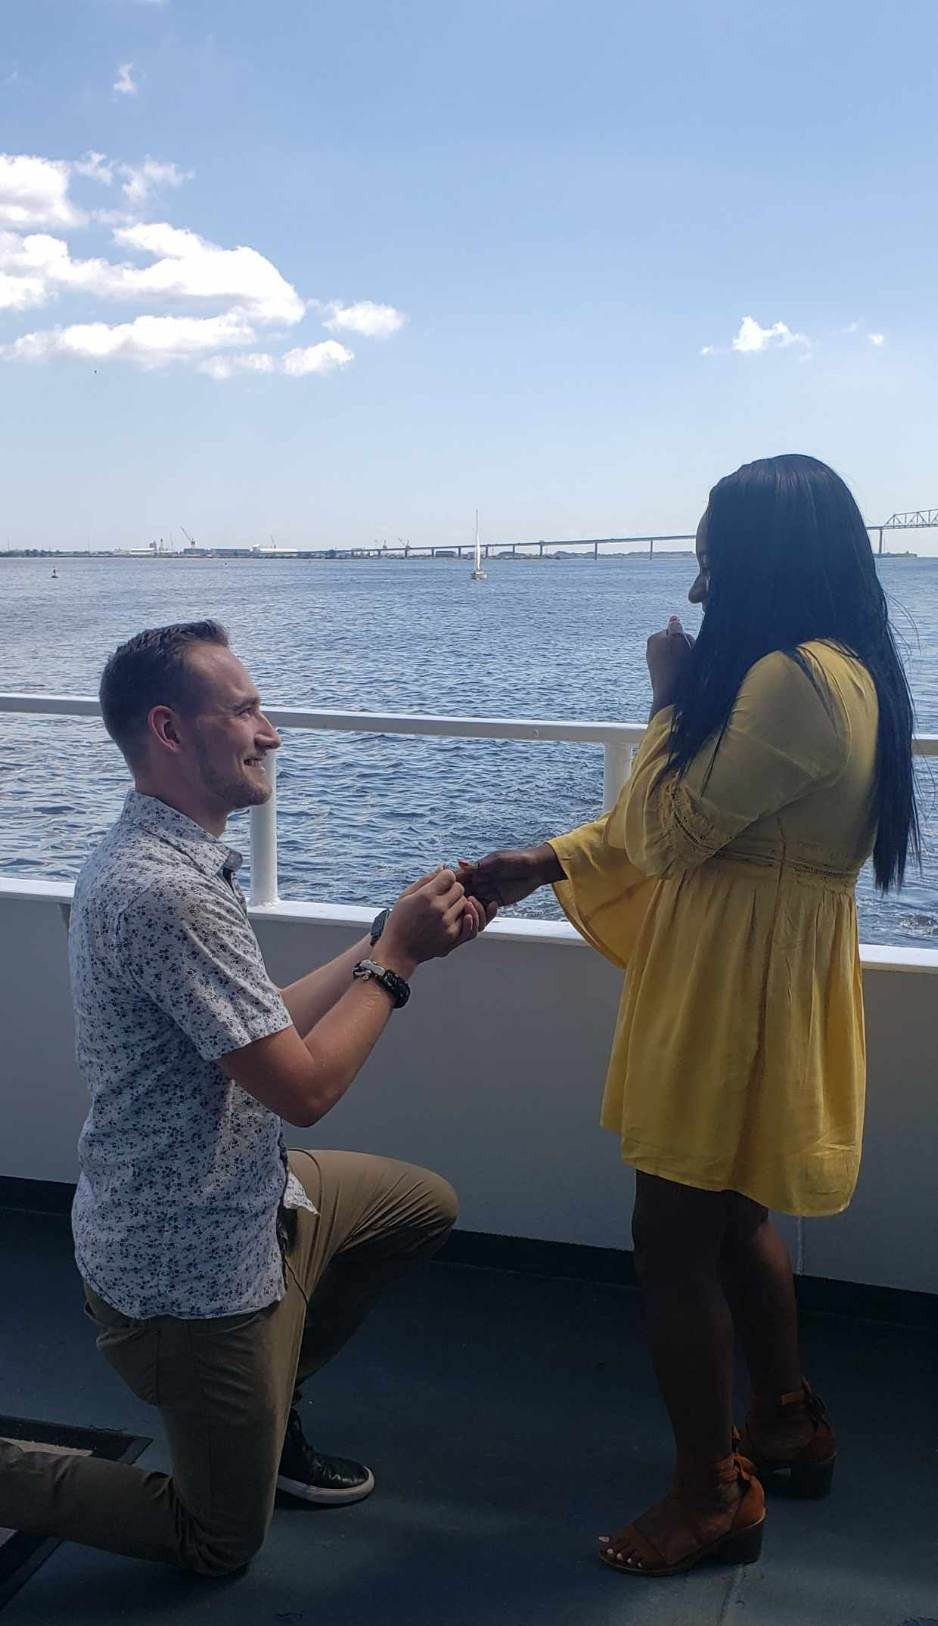 Engagement Proposal Ideas in Dinner Cruise